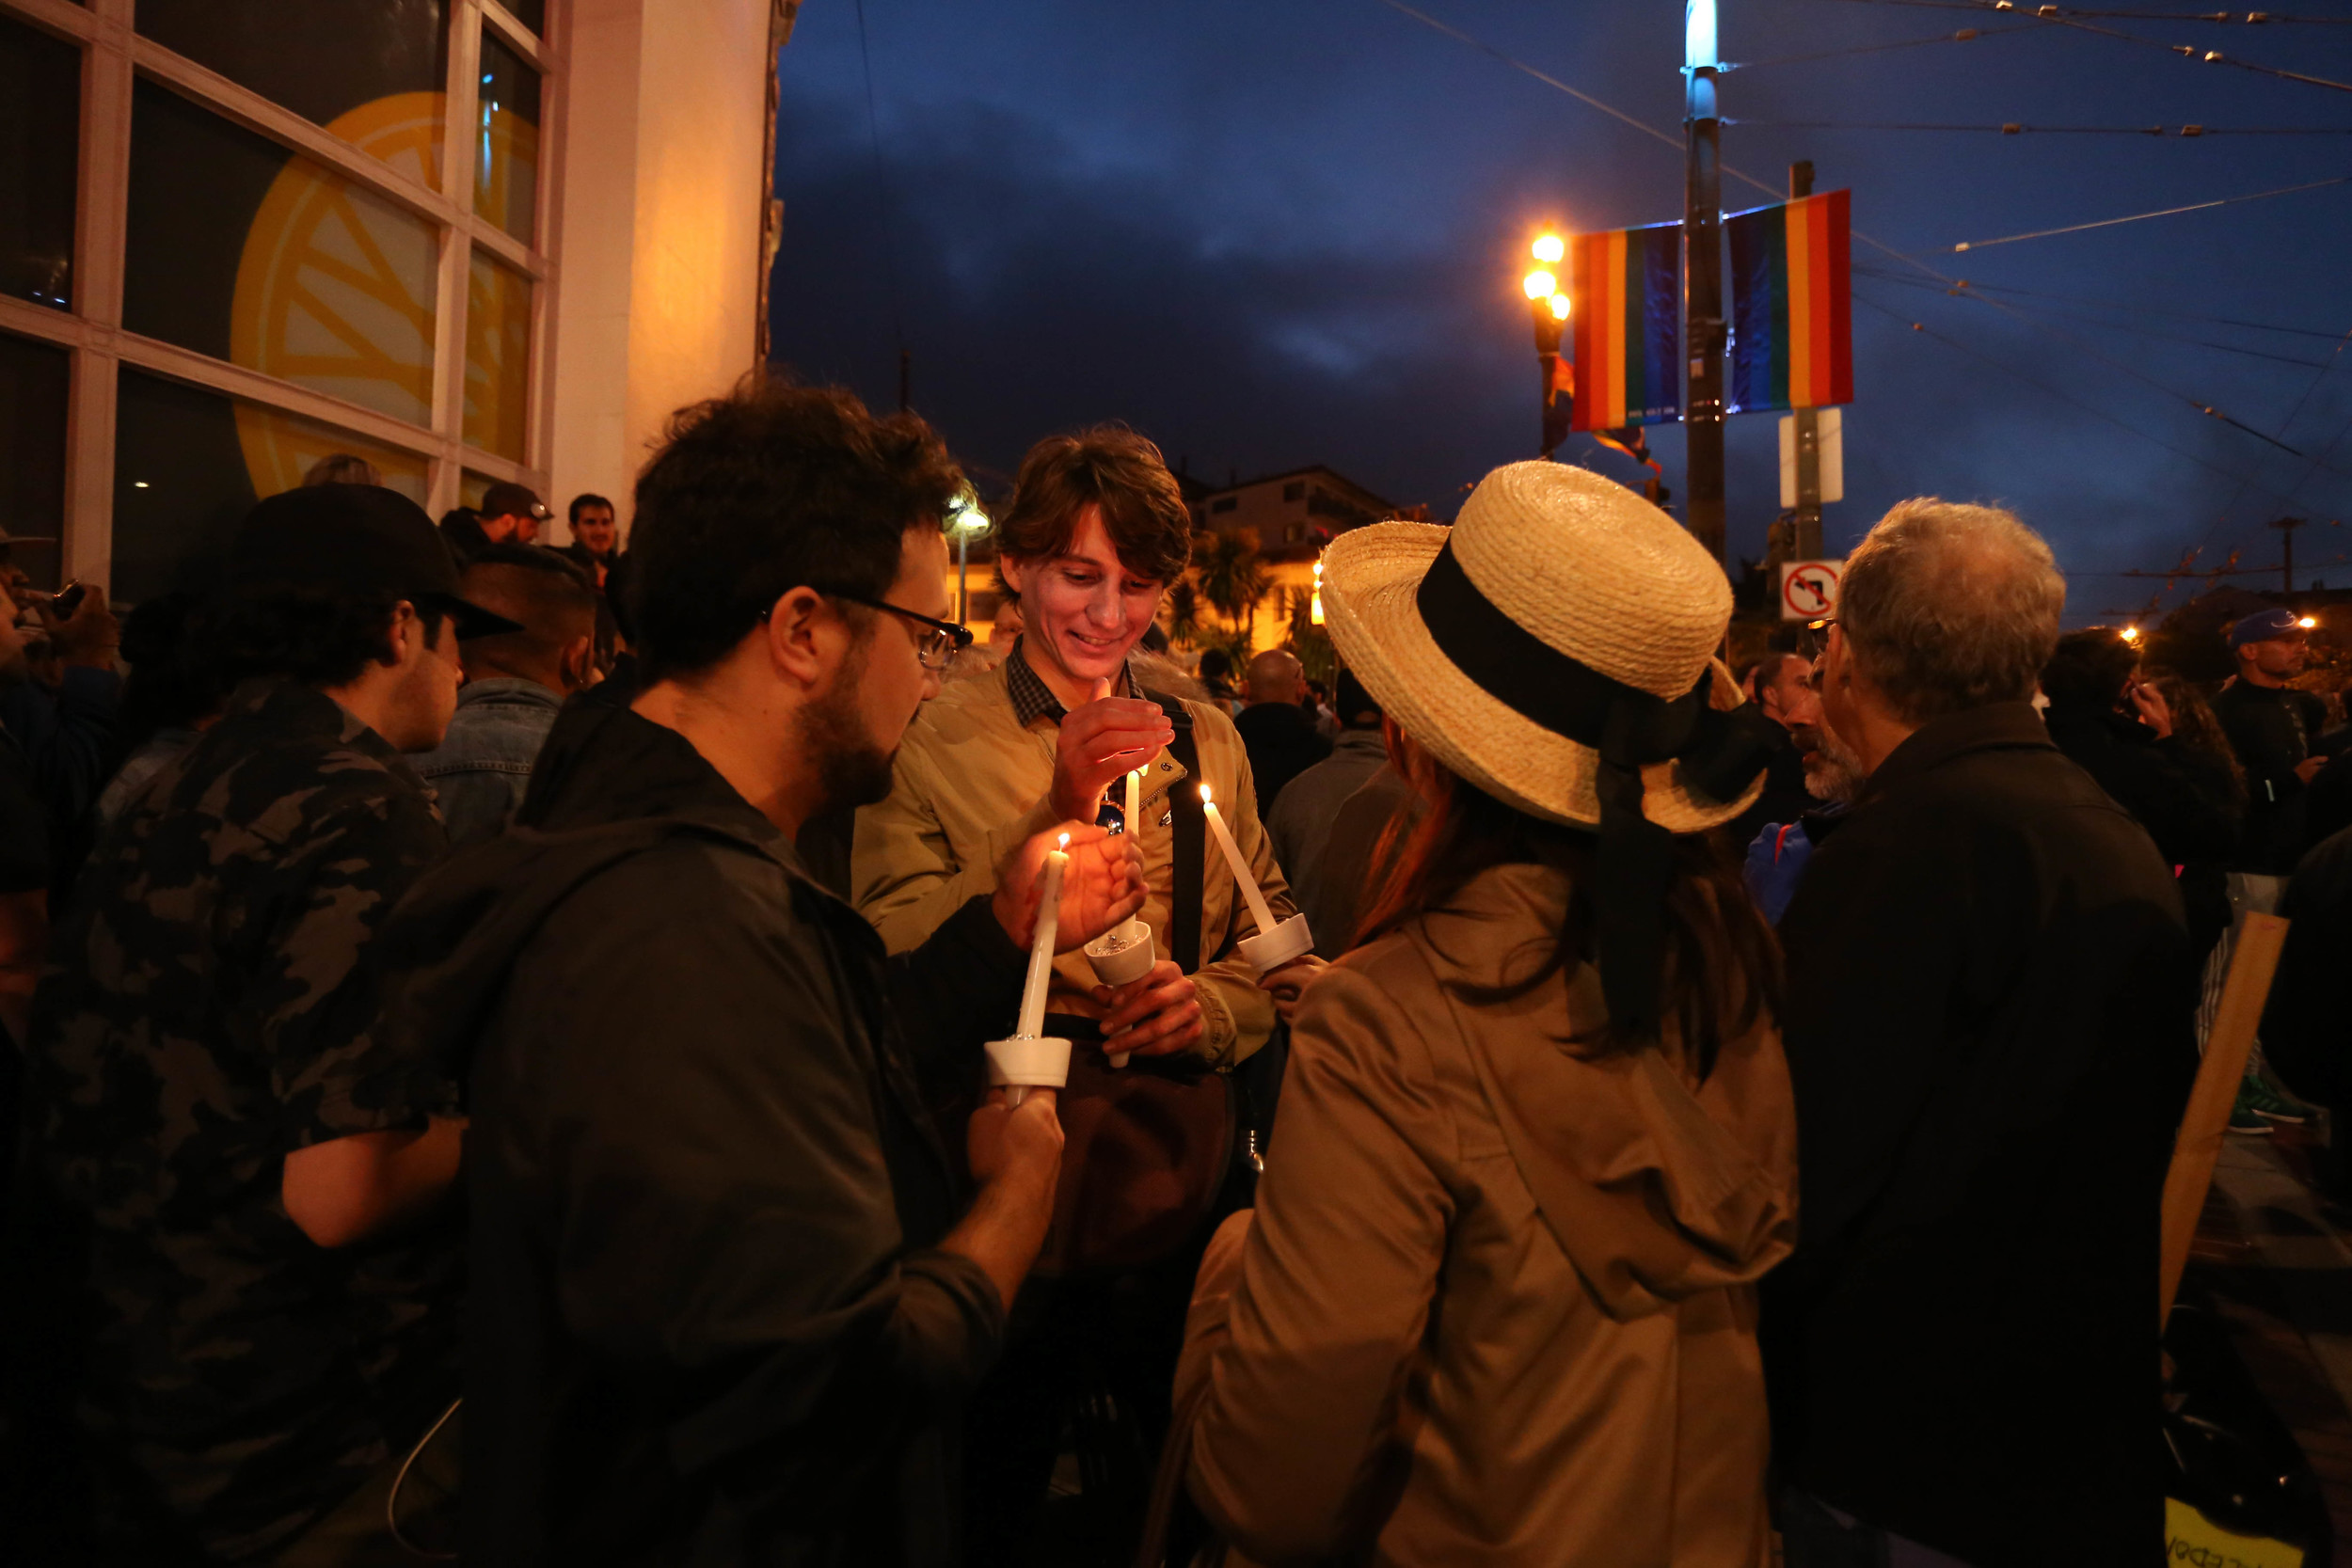 Eric Easley lights a candle during a vigil in Harvey Milk Plaza to remember the victims of the Orlando shooting.